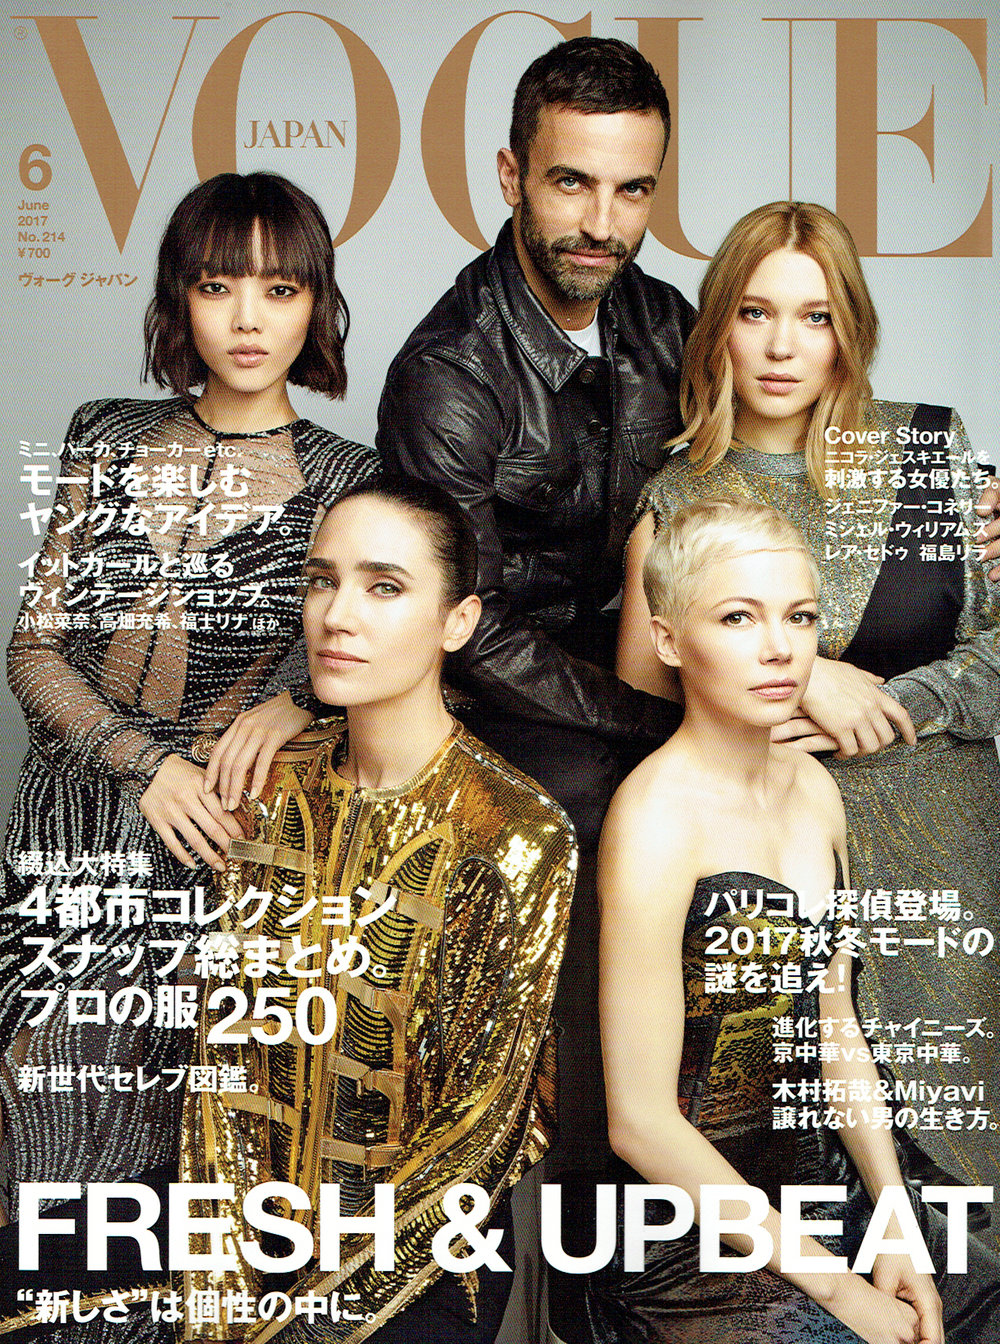 Cleo Ferin Mercury Silk Scarf as seen in Vogue Japan